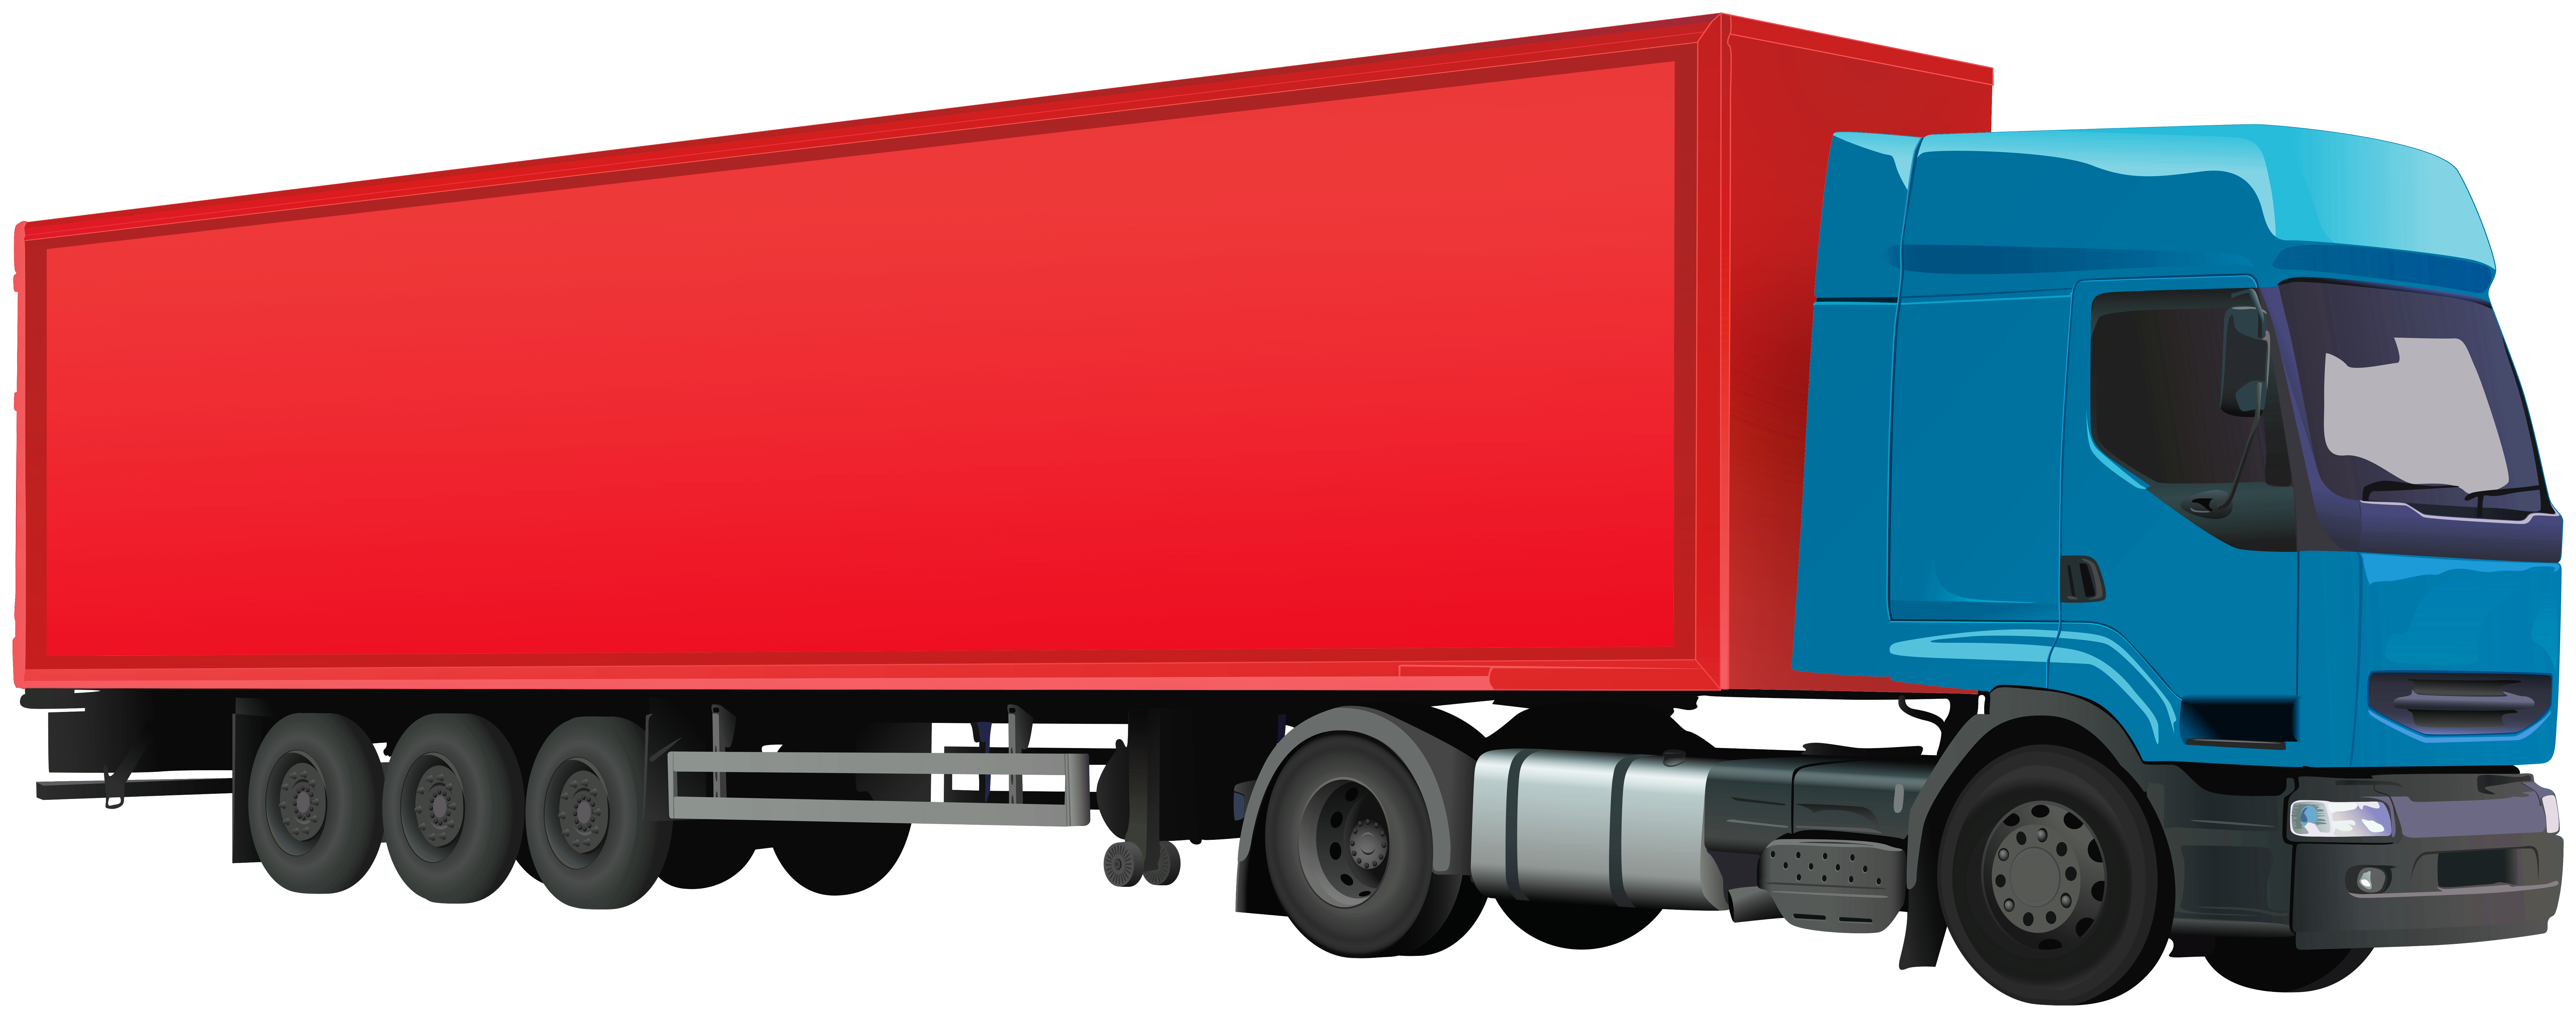 Truck clipart container truck. Png clip art best